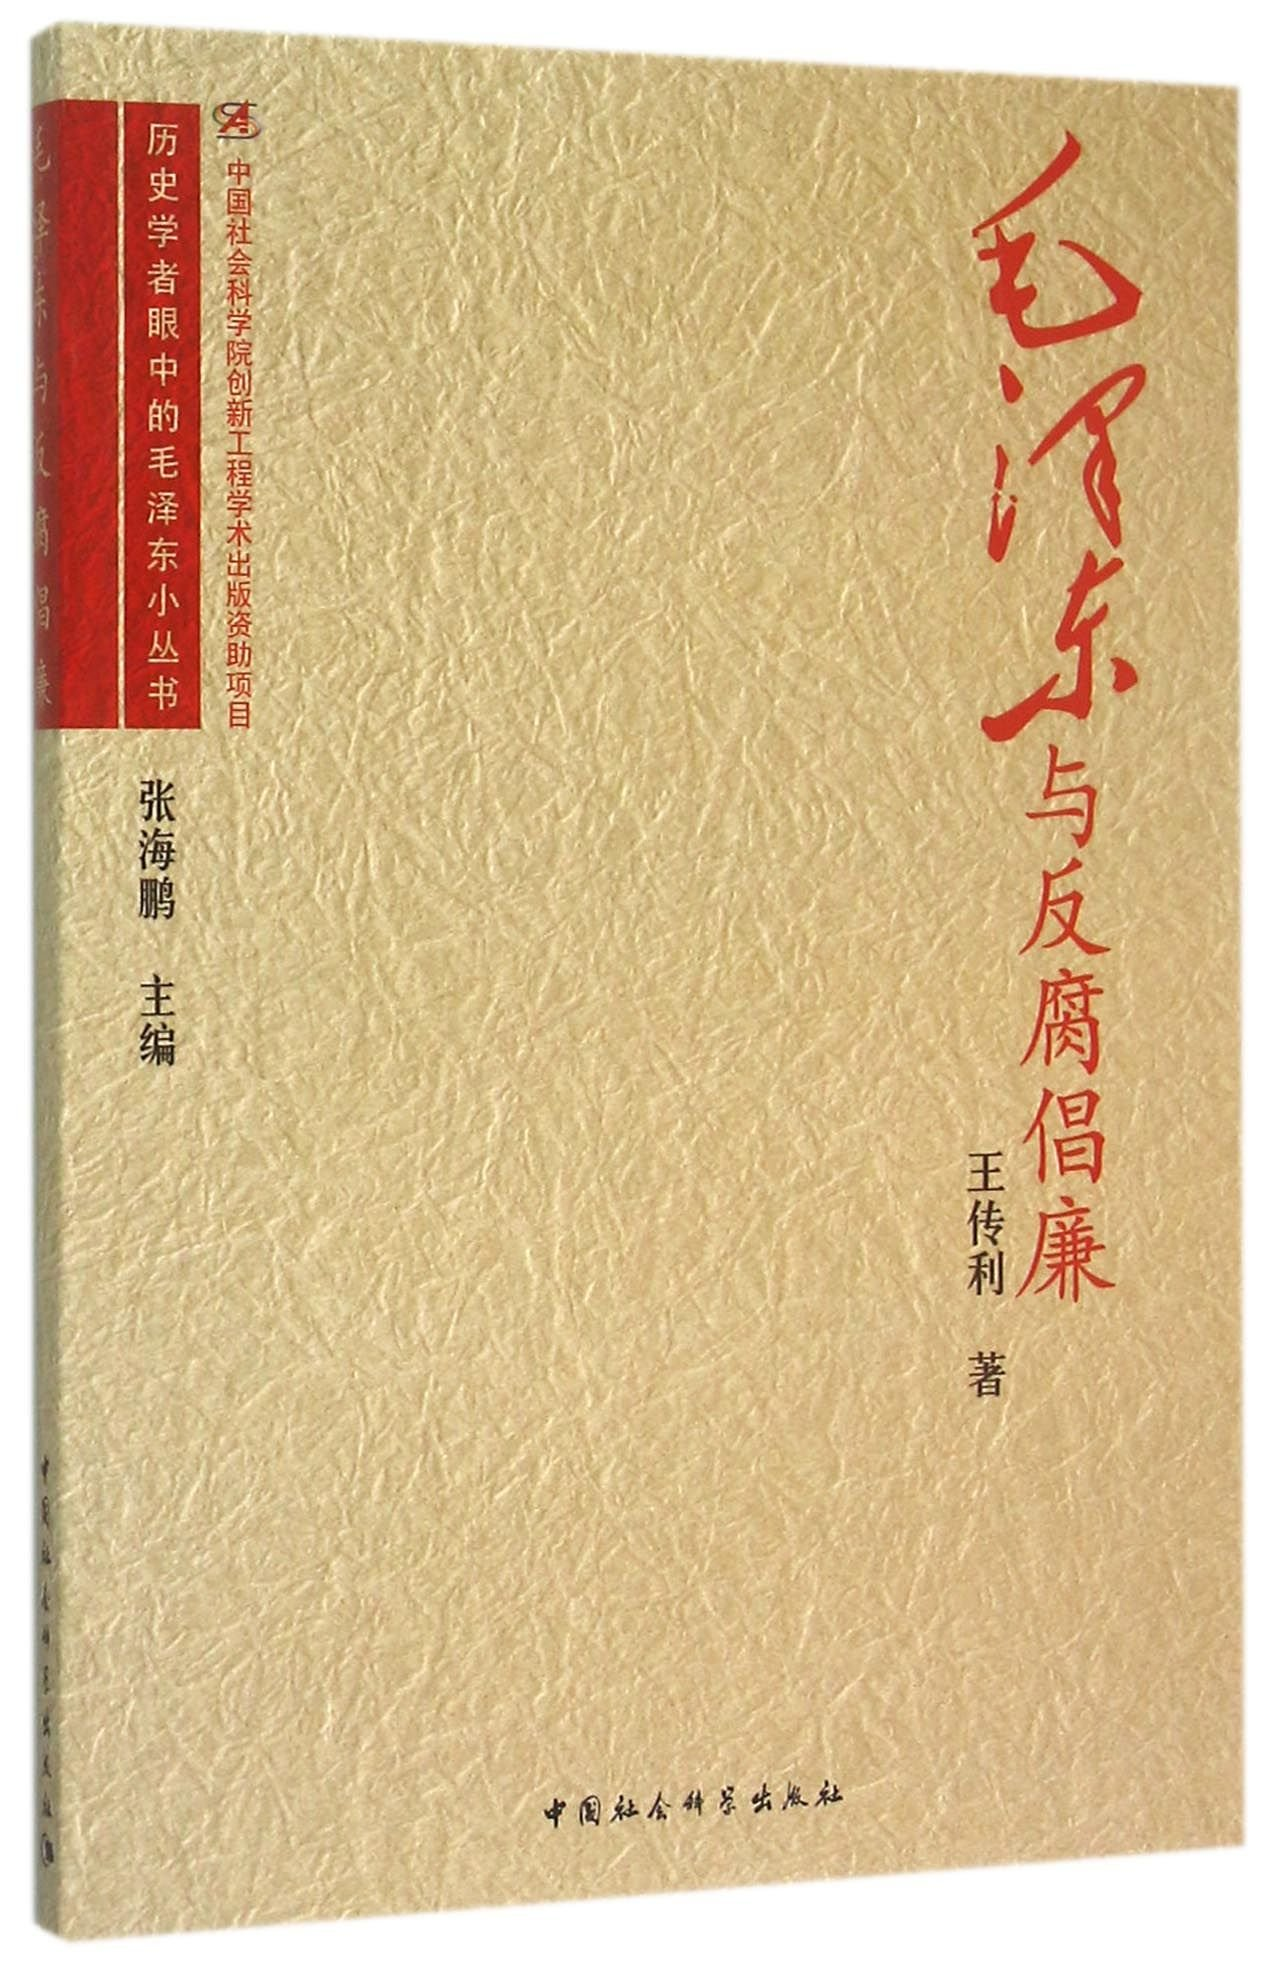 Download Mao Zedong and Anti-corruption and Clean Government Promotion (Chinese Edition) PDF